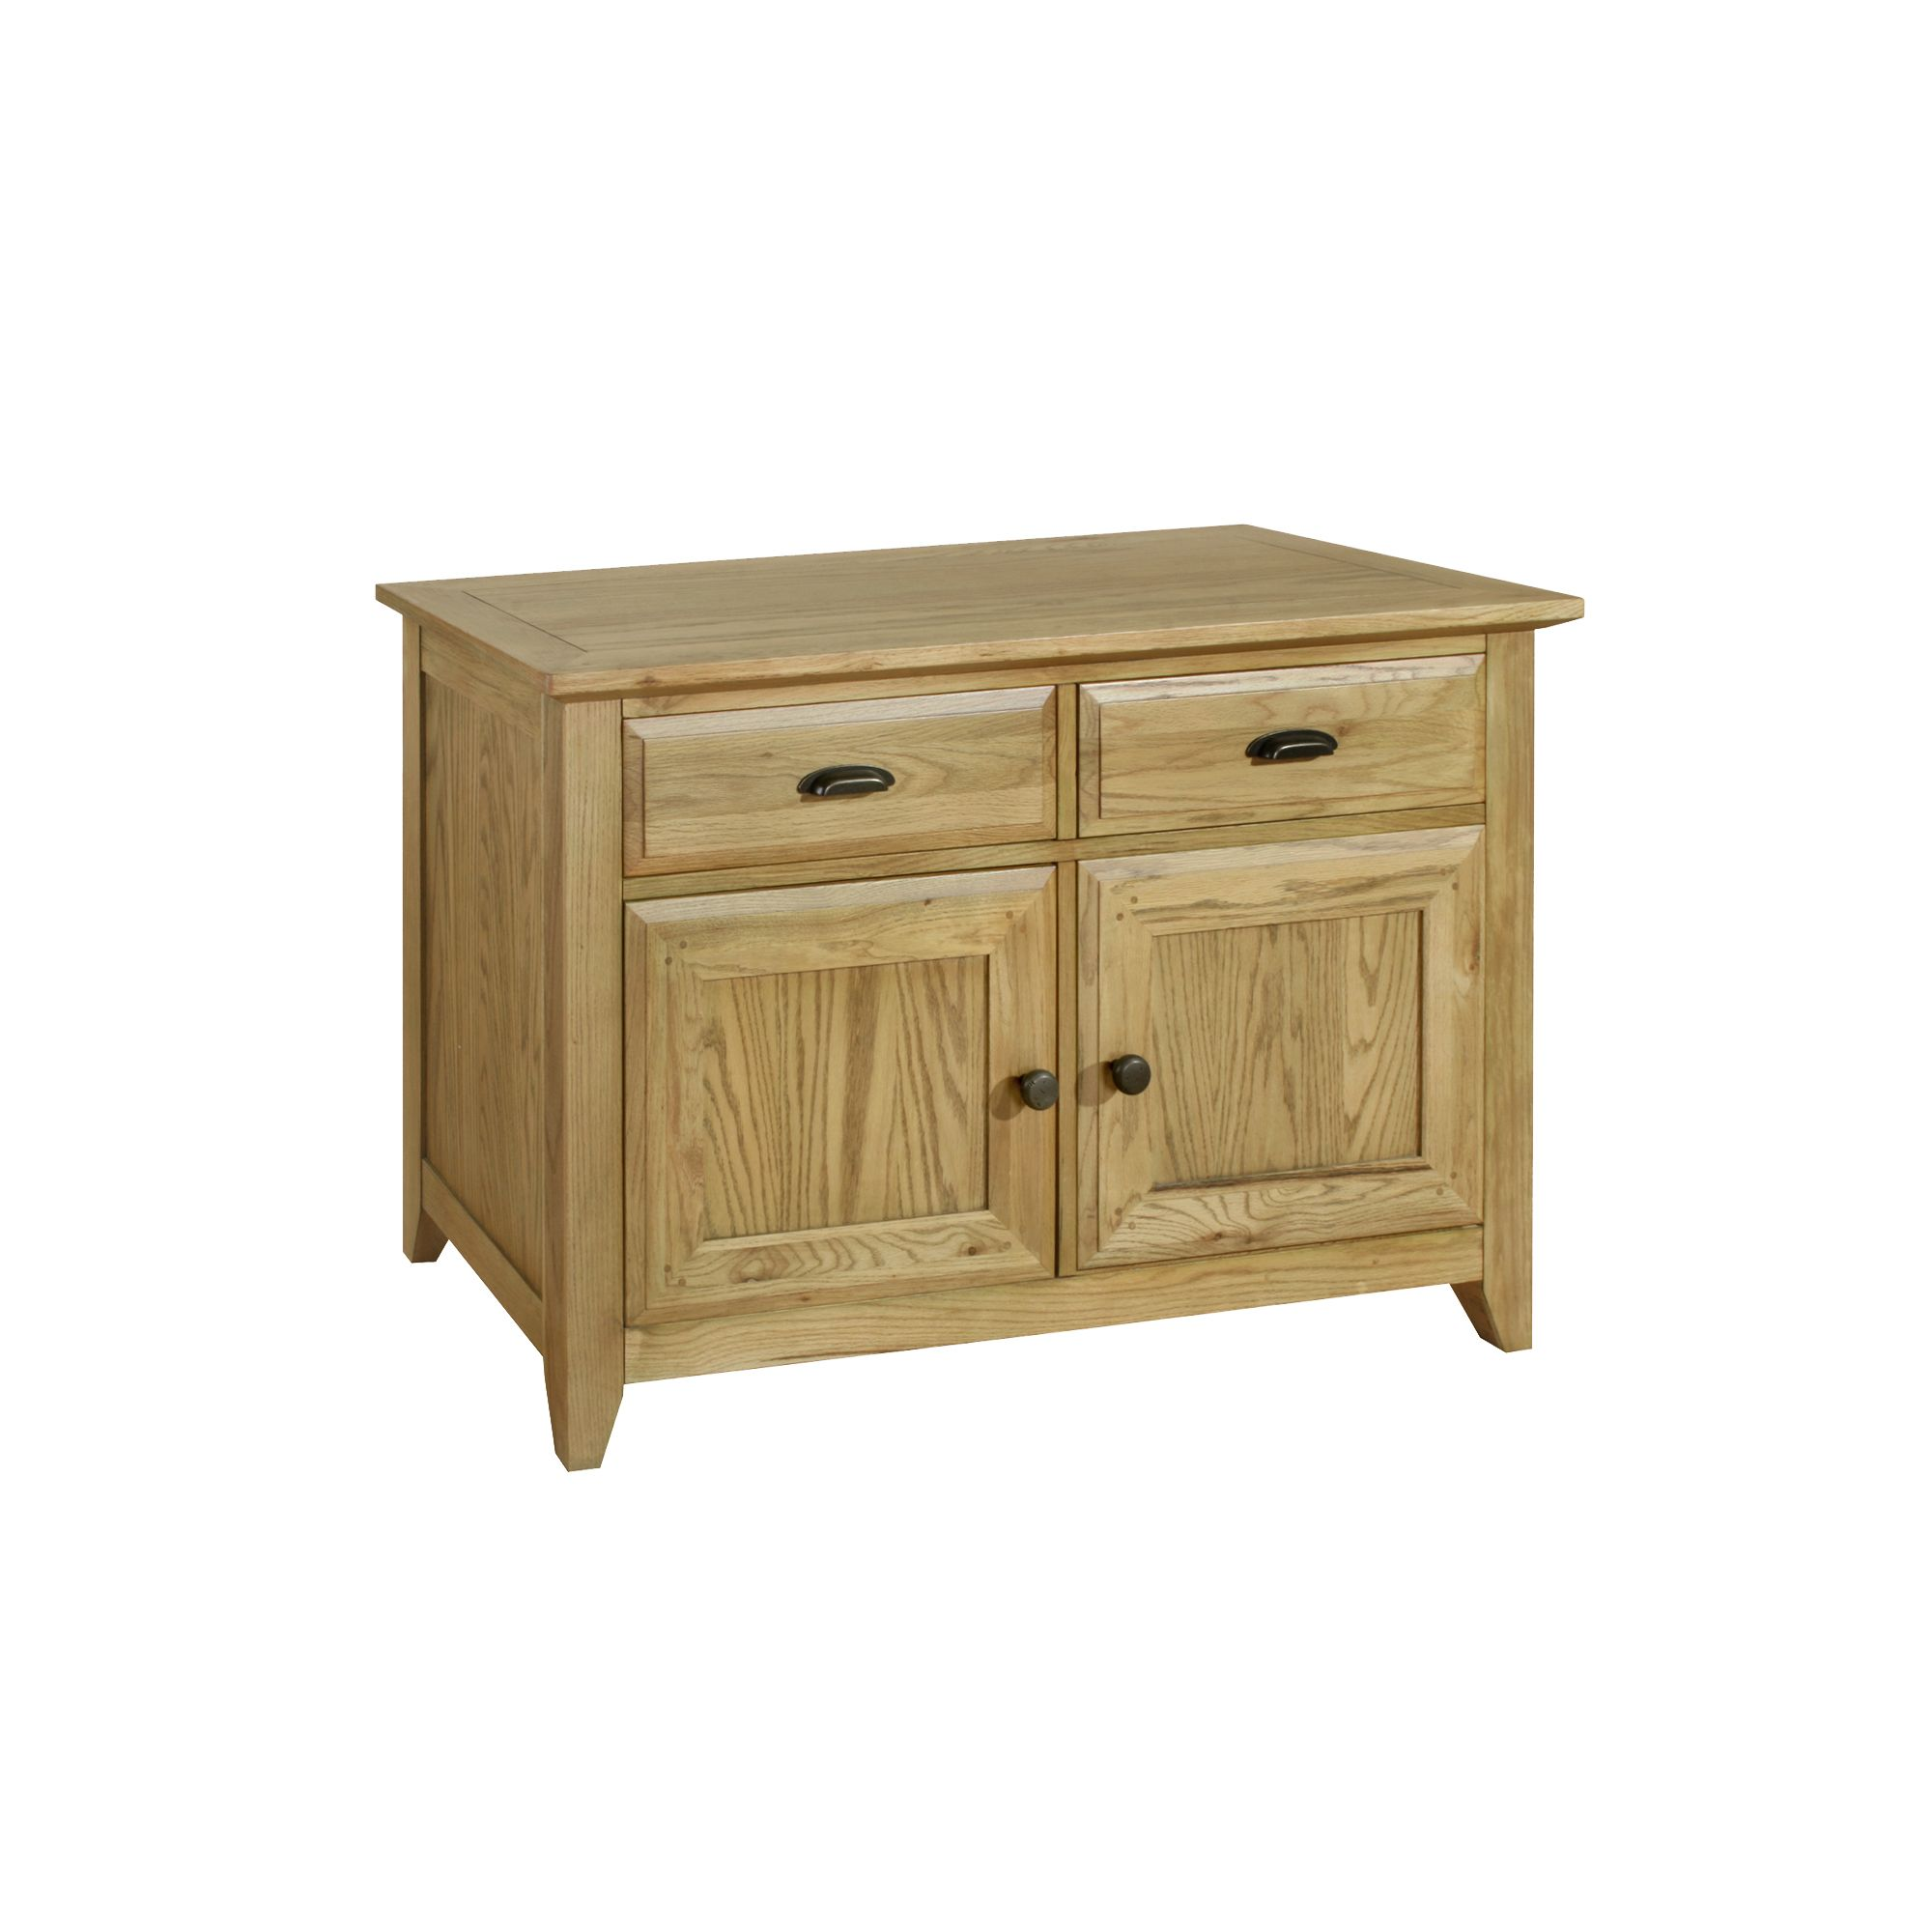 Alterton Furniture Mississippi Small Sideboard at Tesco Direct